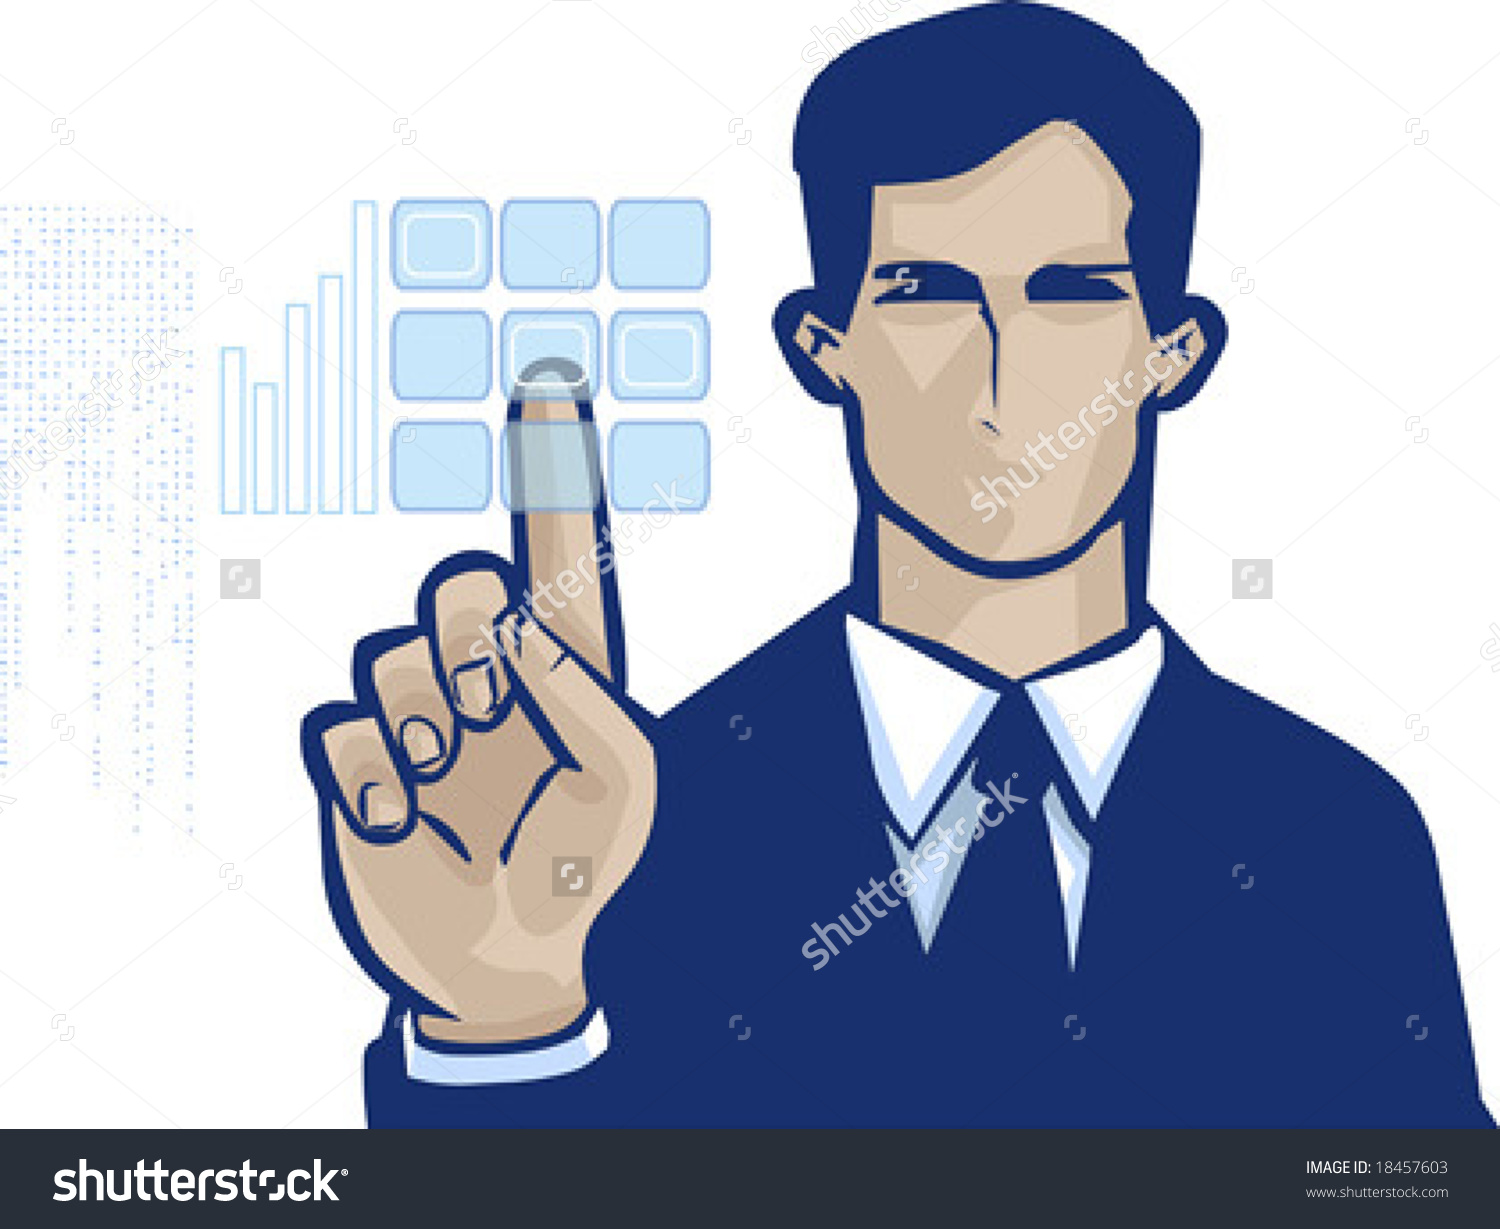 Navy man business suit for canada clipart.